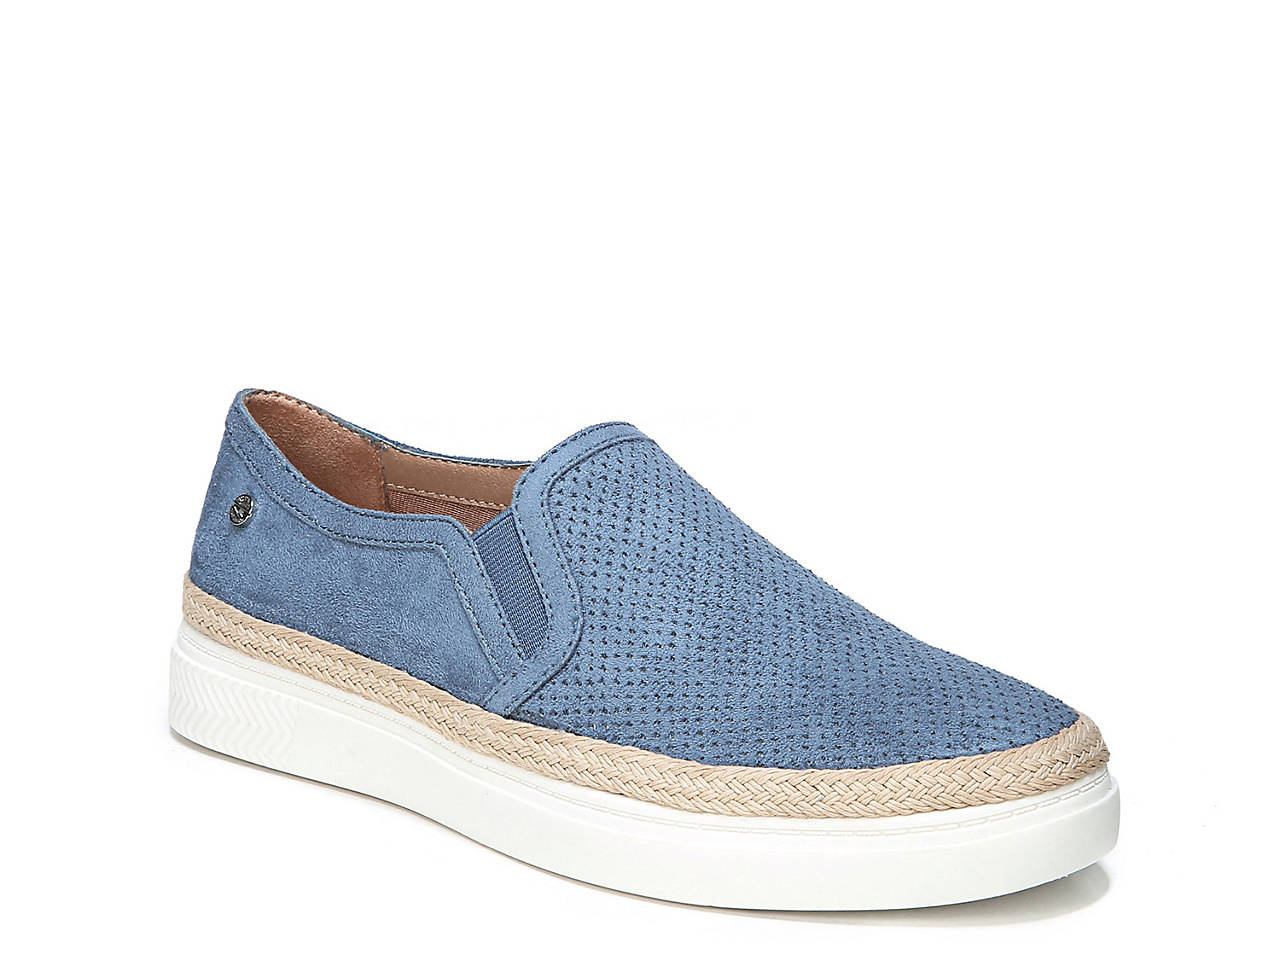 LifeStride Loma 2 Women's ... Slip-On Sneakers sale comfortable 3BTdQ